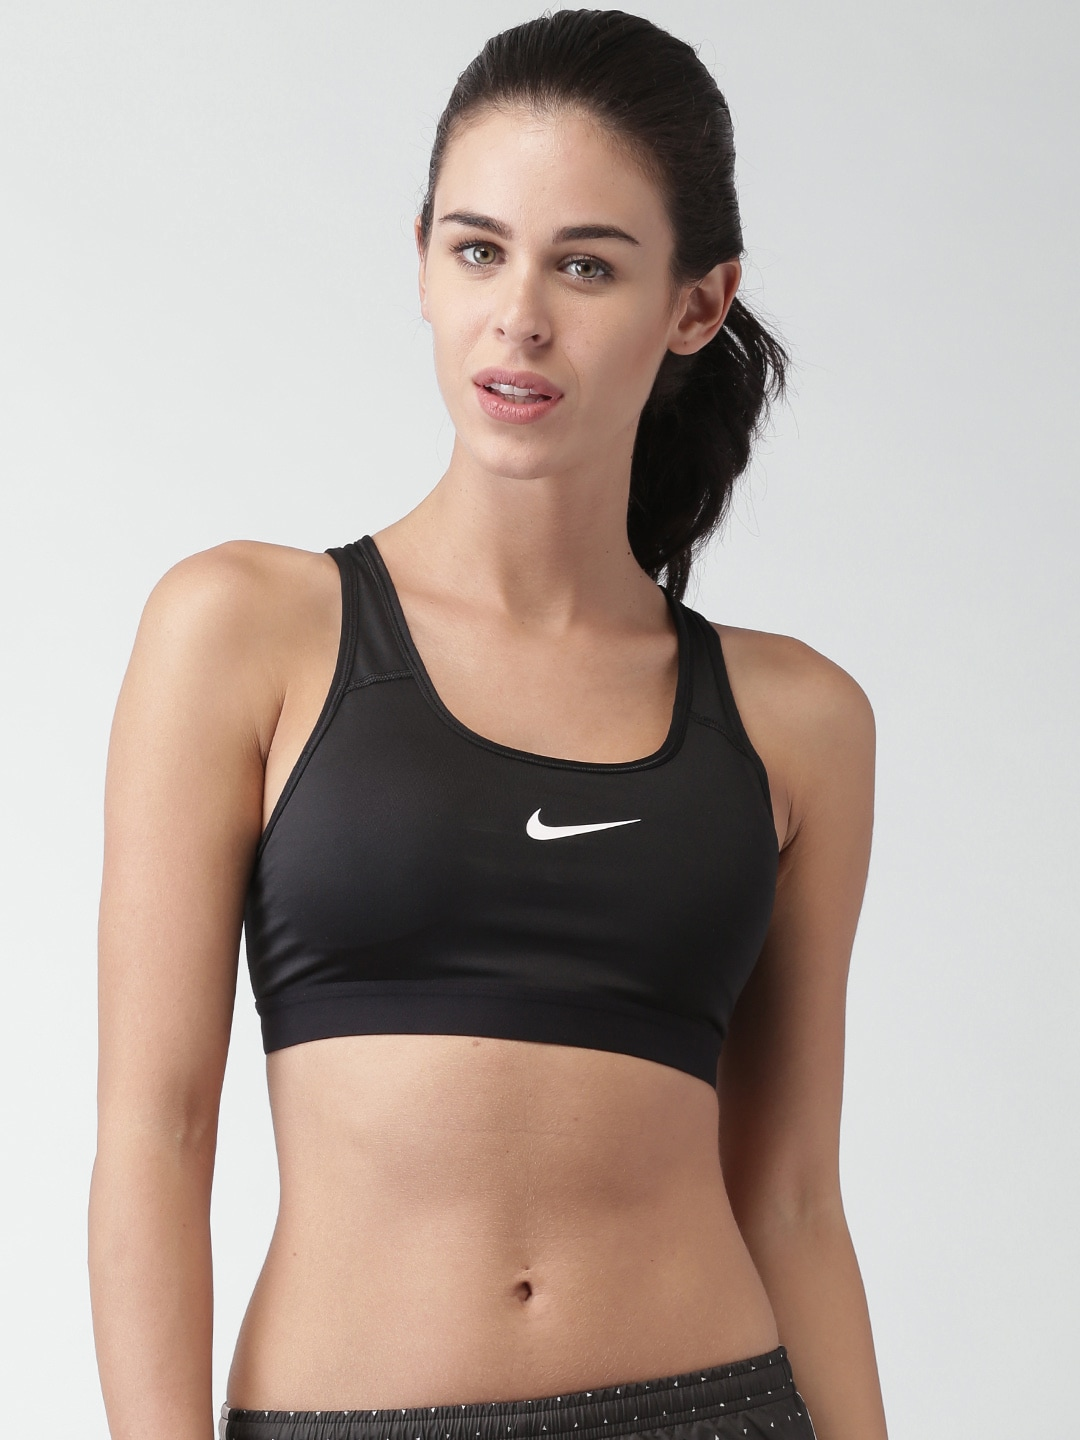 cc9b698370 Sports Bra - Shop Online For Women Sports Bras in India